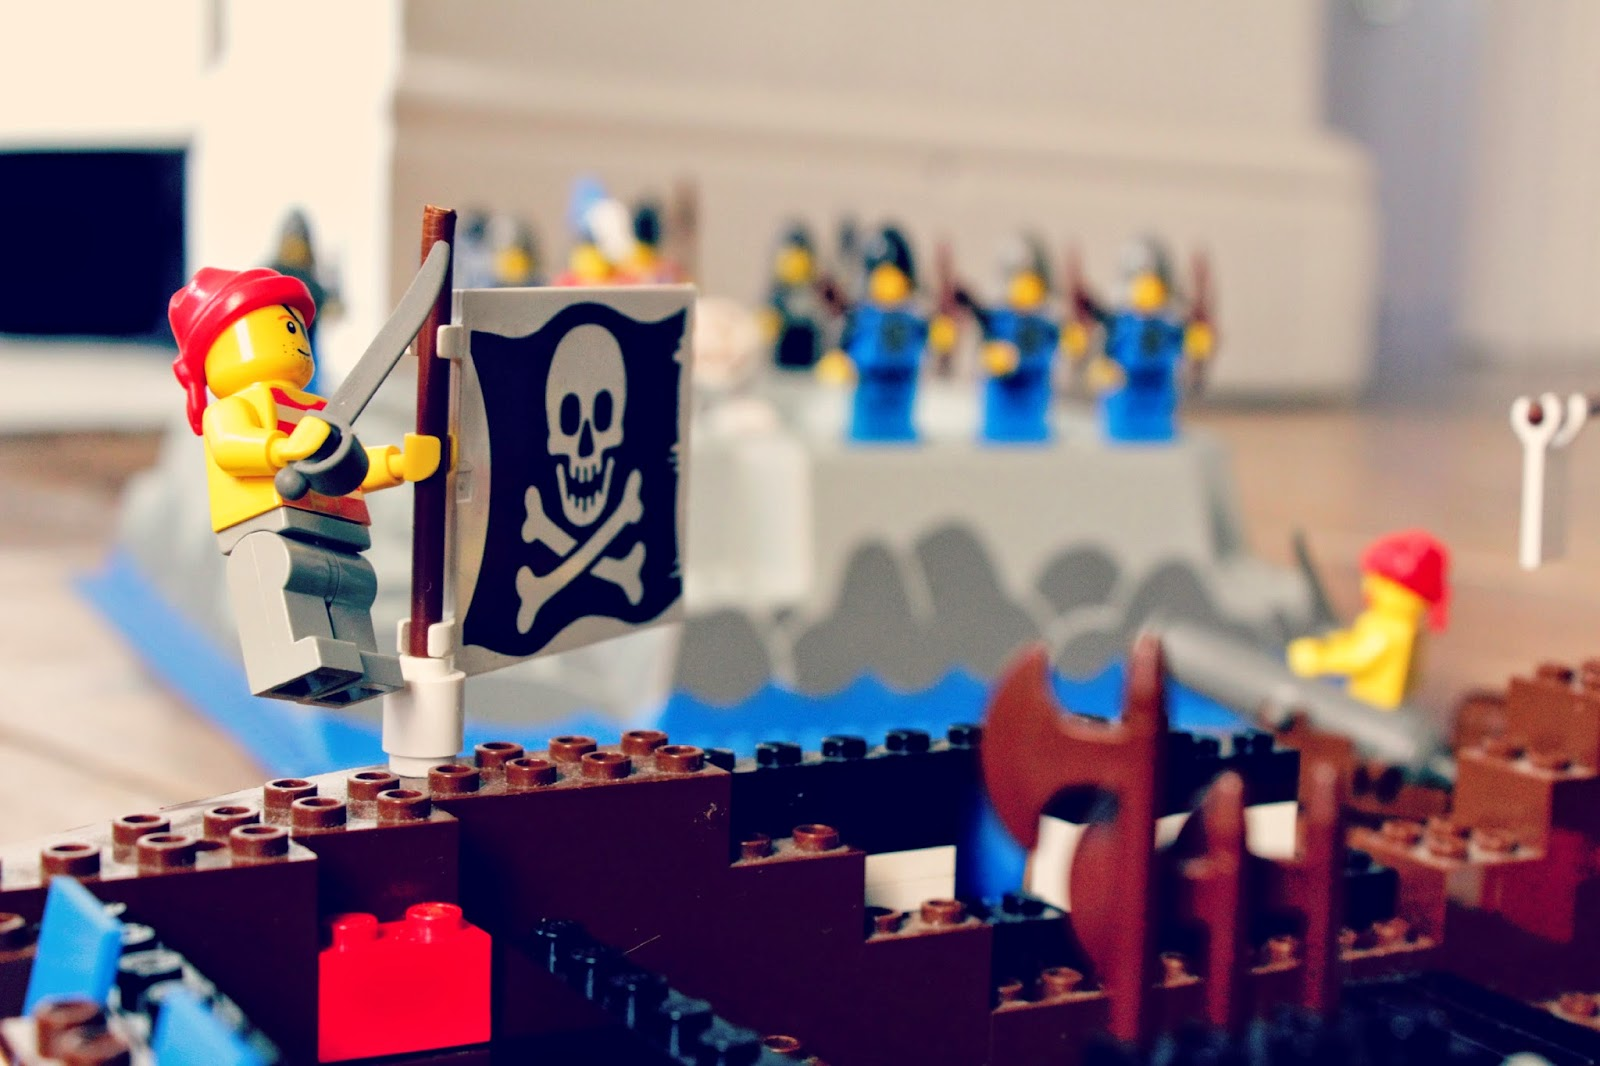 Project 365 day 60 - Pirate Lego // 76sunflowers